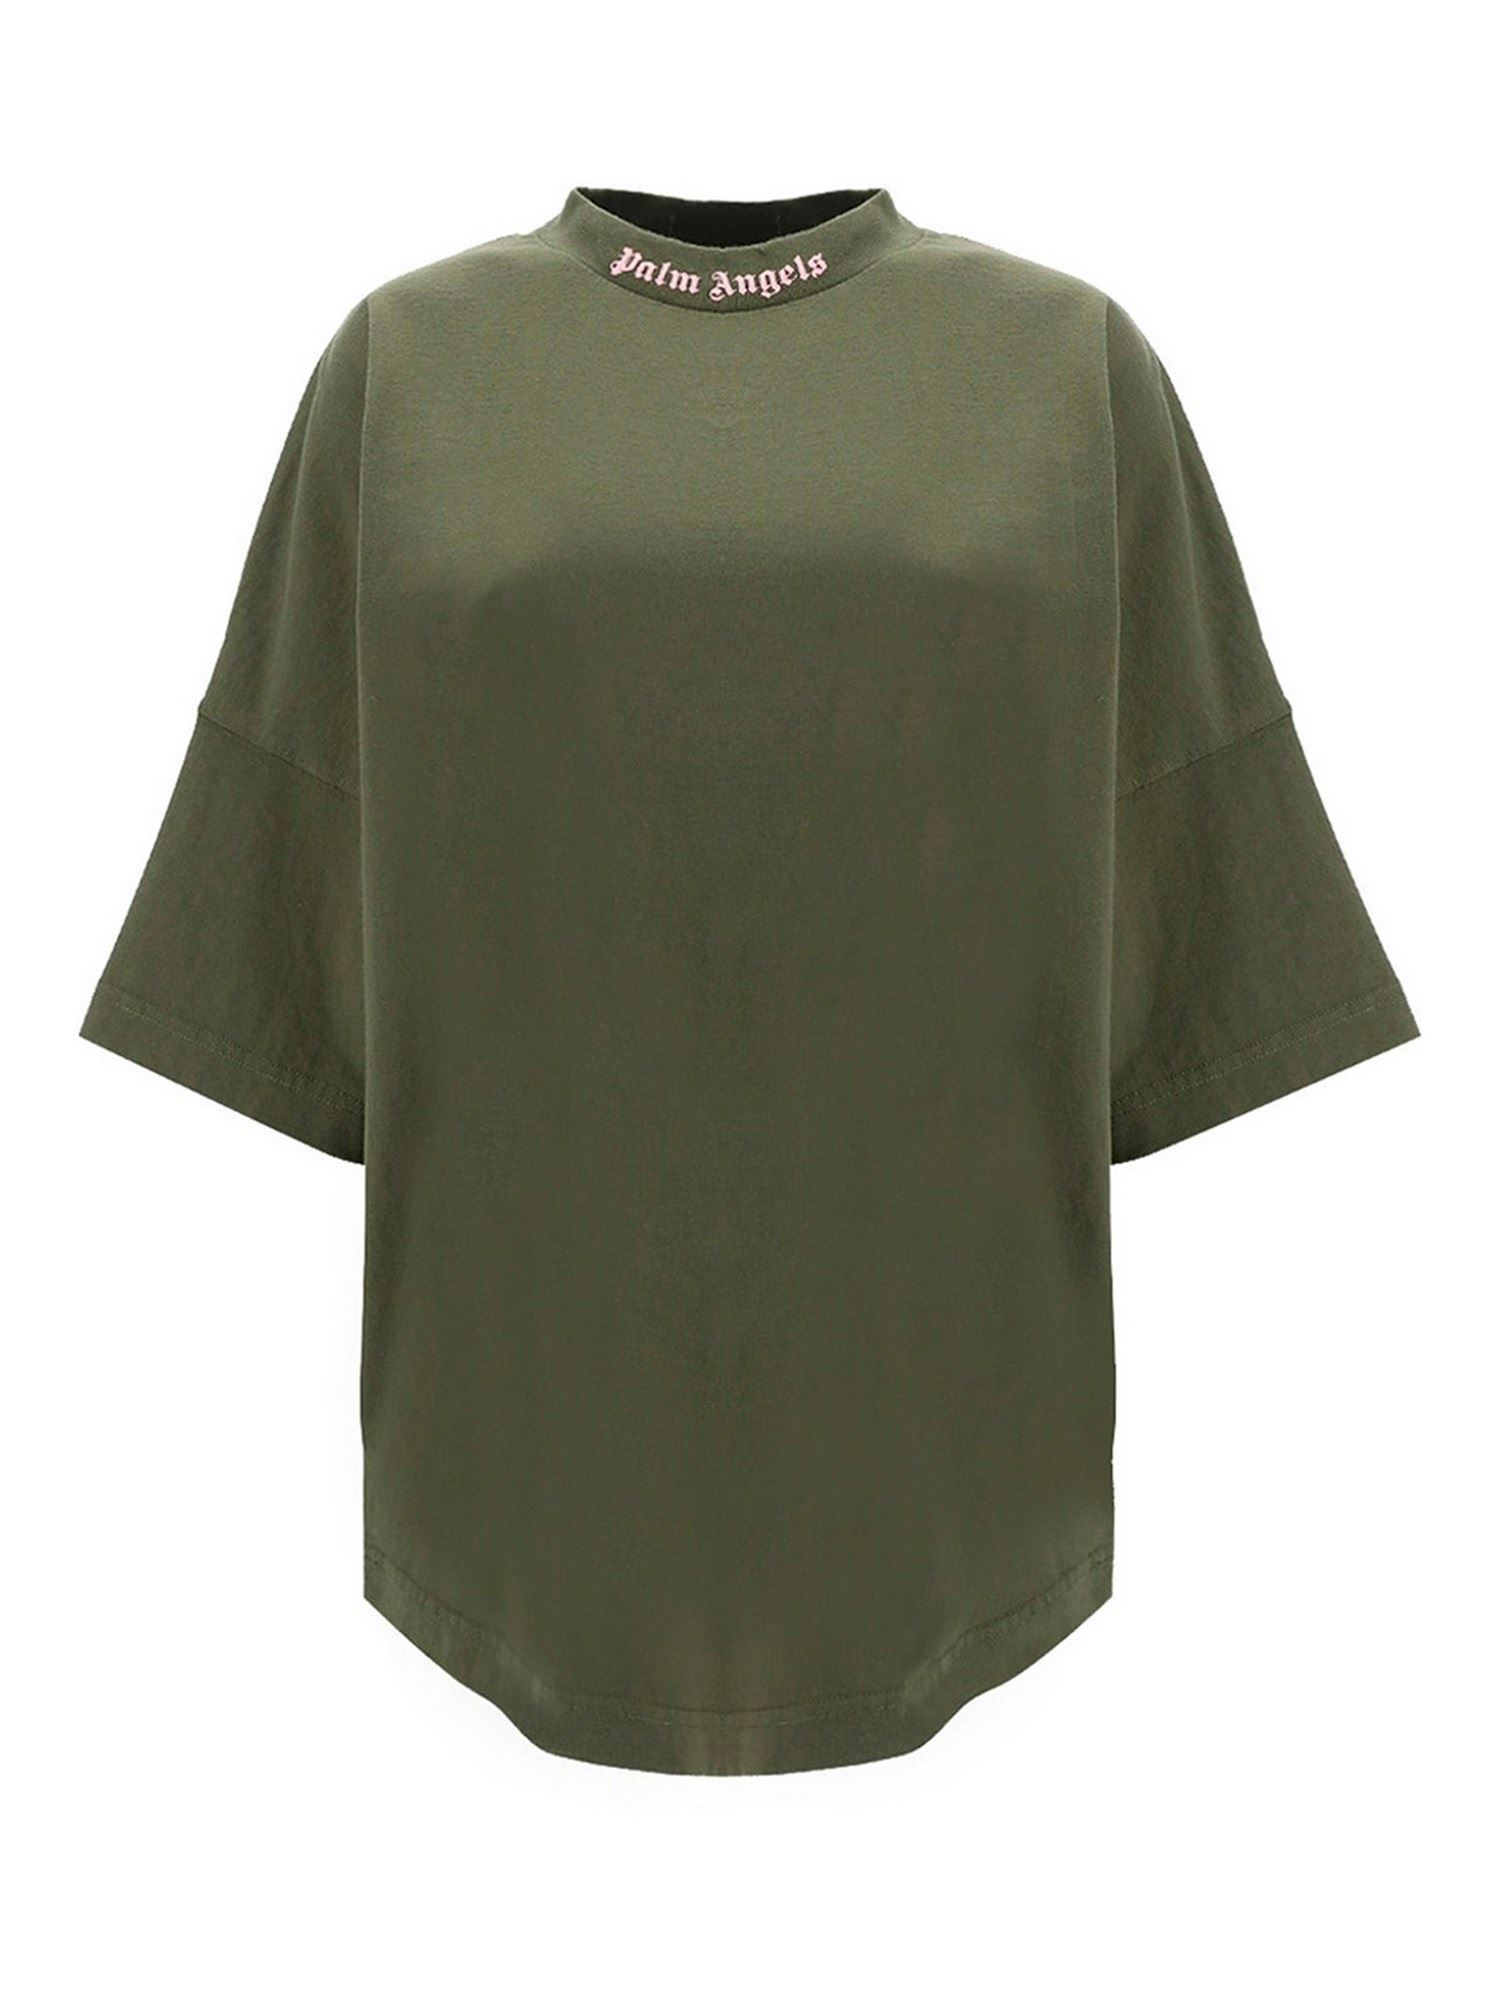 Palm Angels LOGO PRINTS OVERSIZED T-SHIRT IN ARMY GREEN